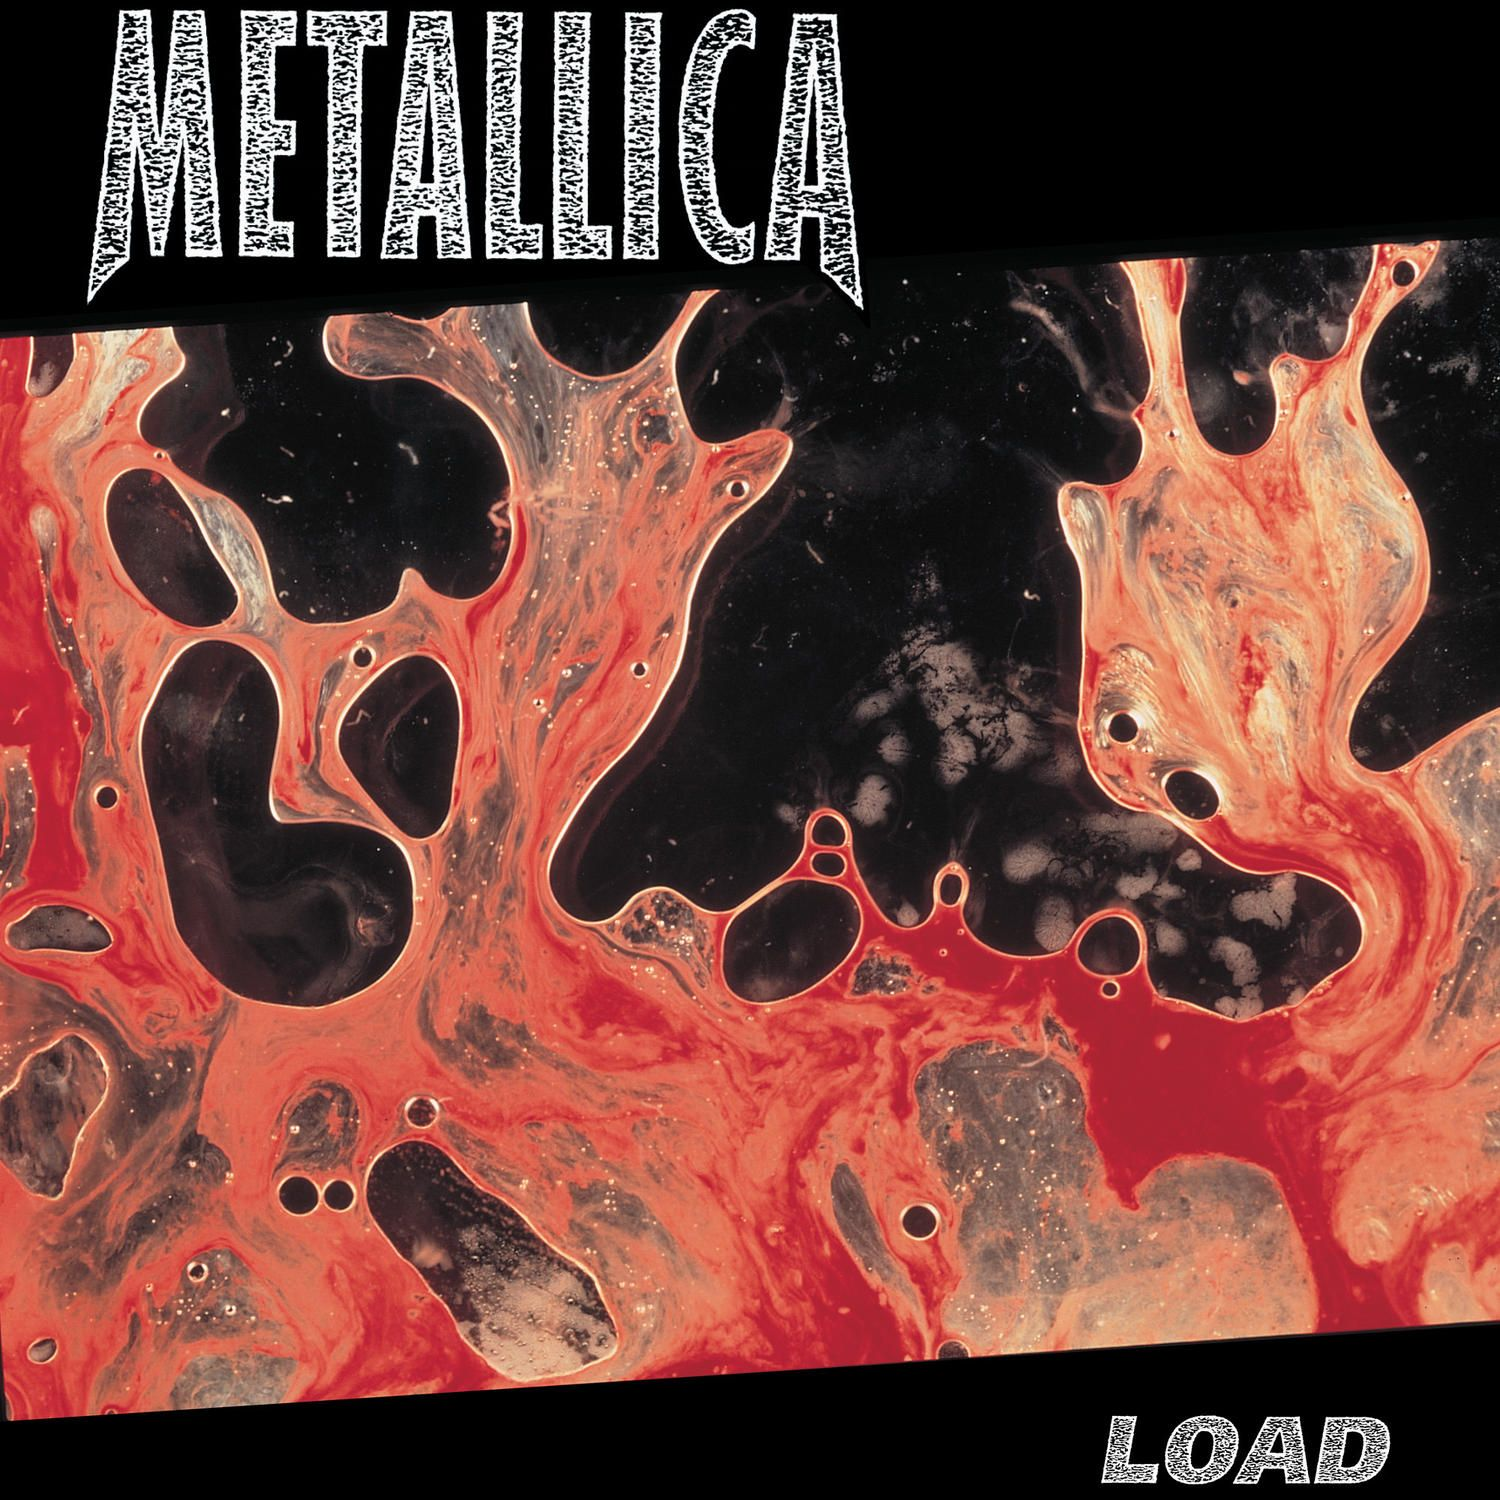 Metallica - Load album cover